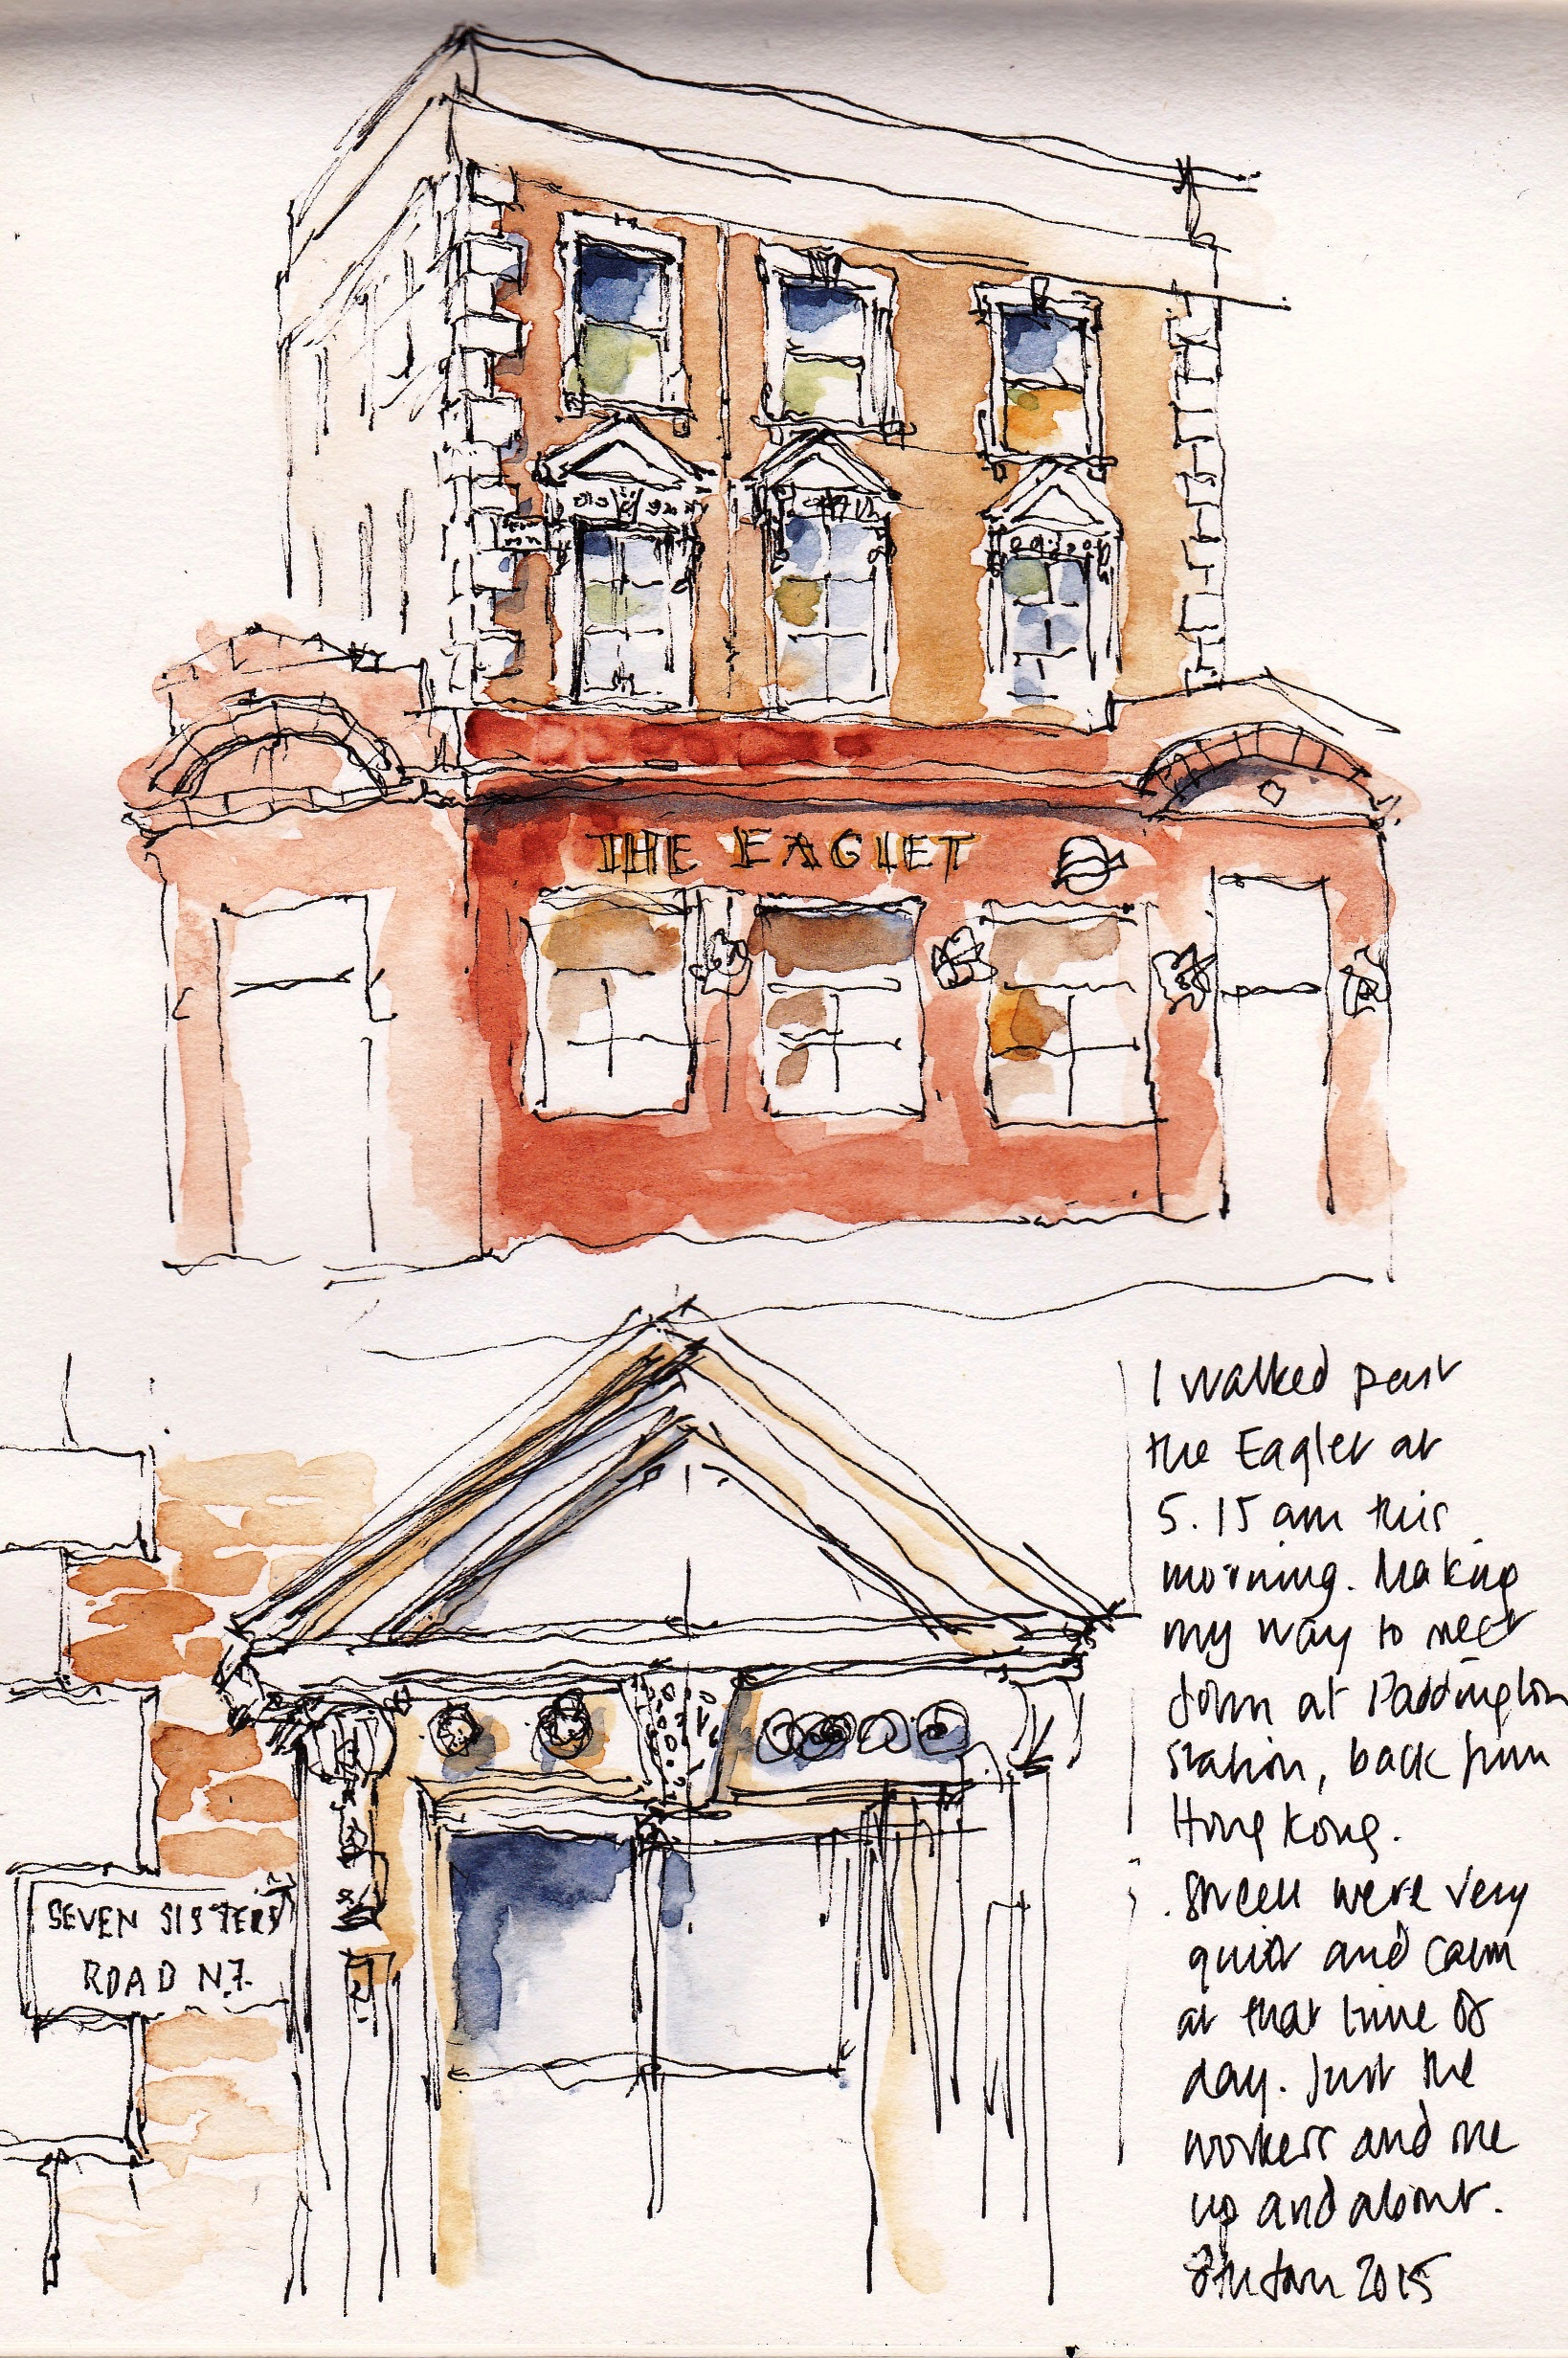 pen and ink sketch of the Eaglet pub on Seven Sisters Road, Holloway